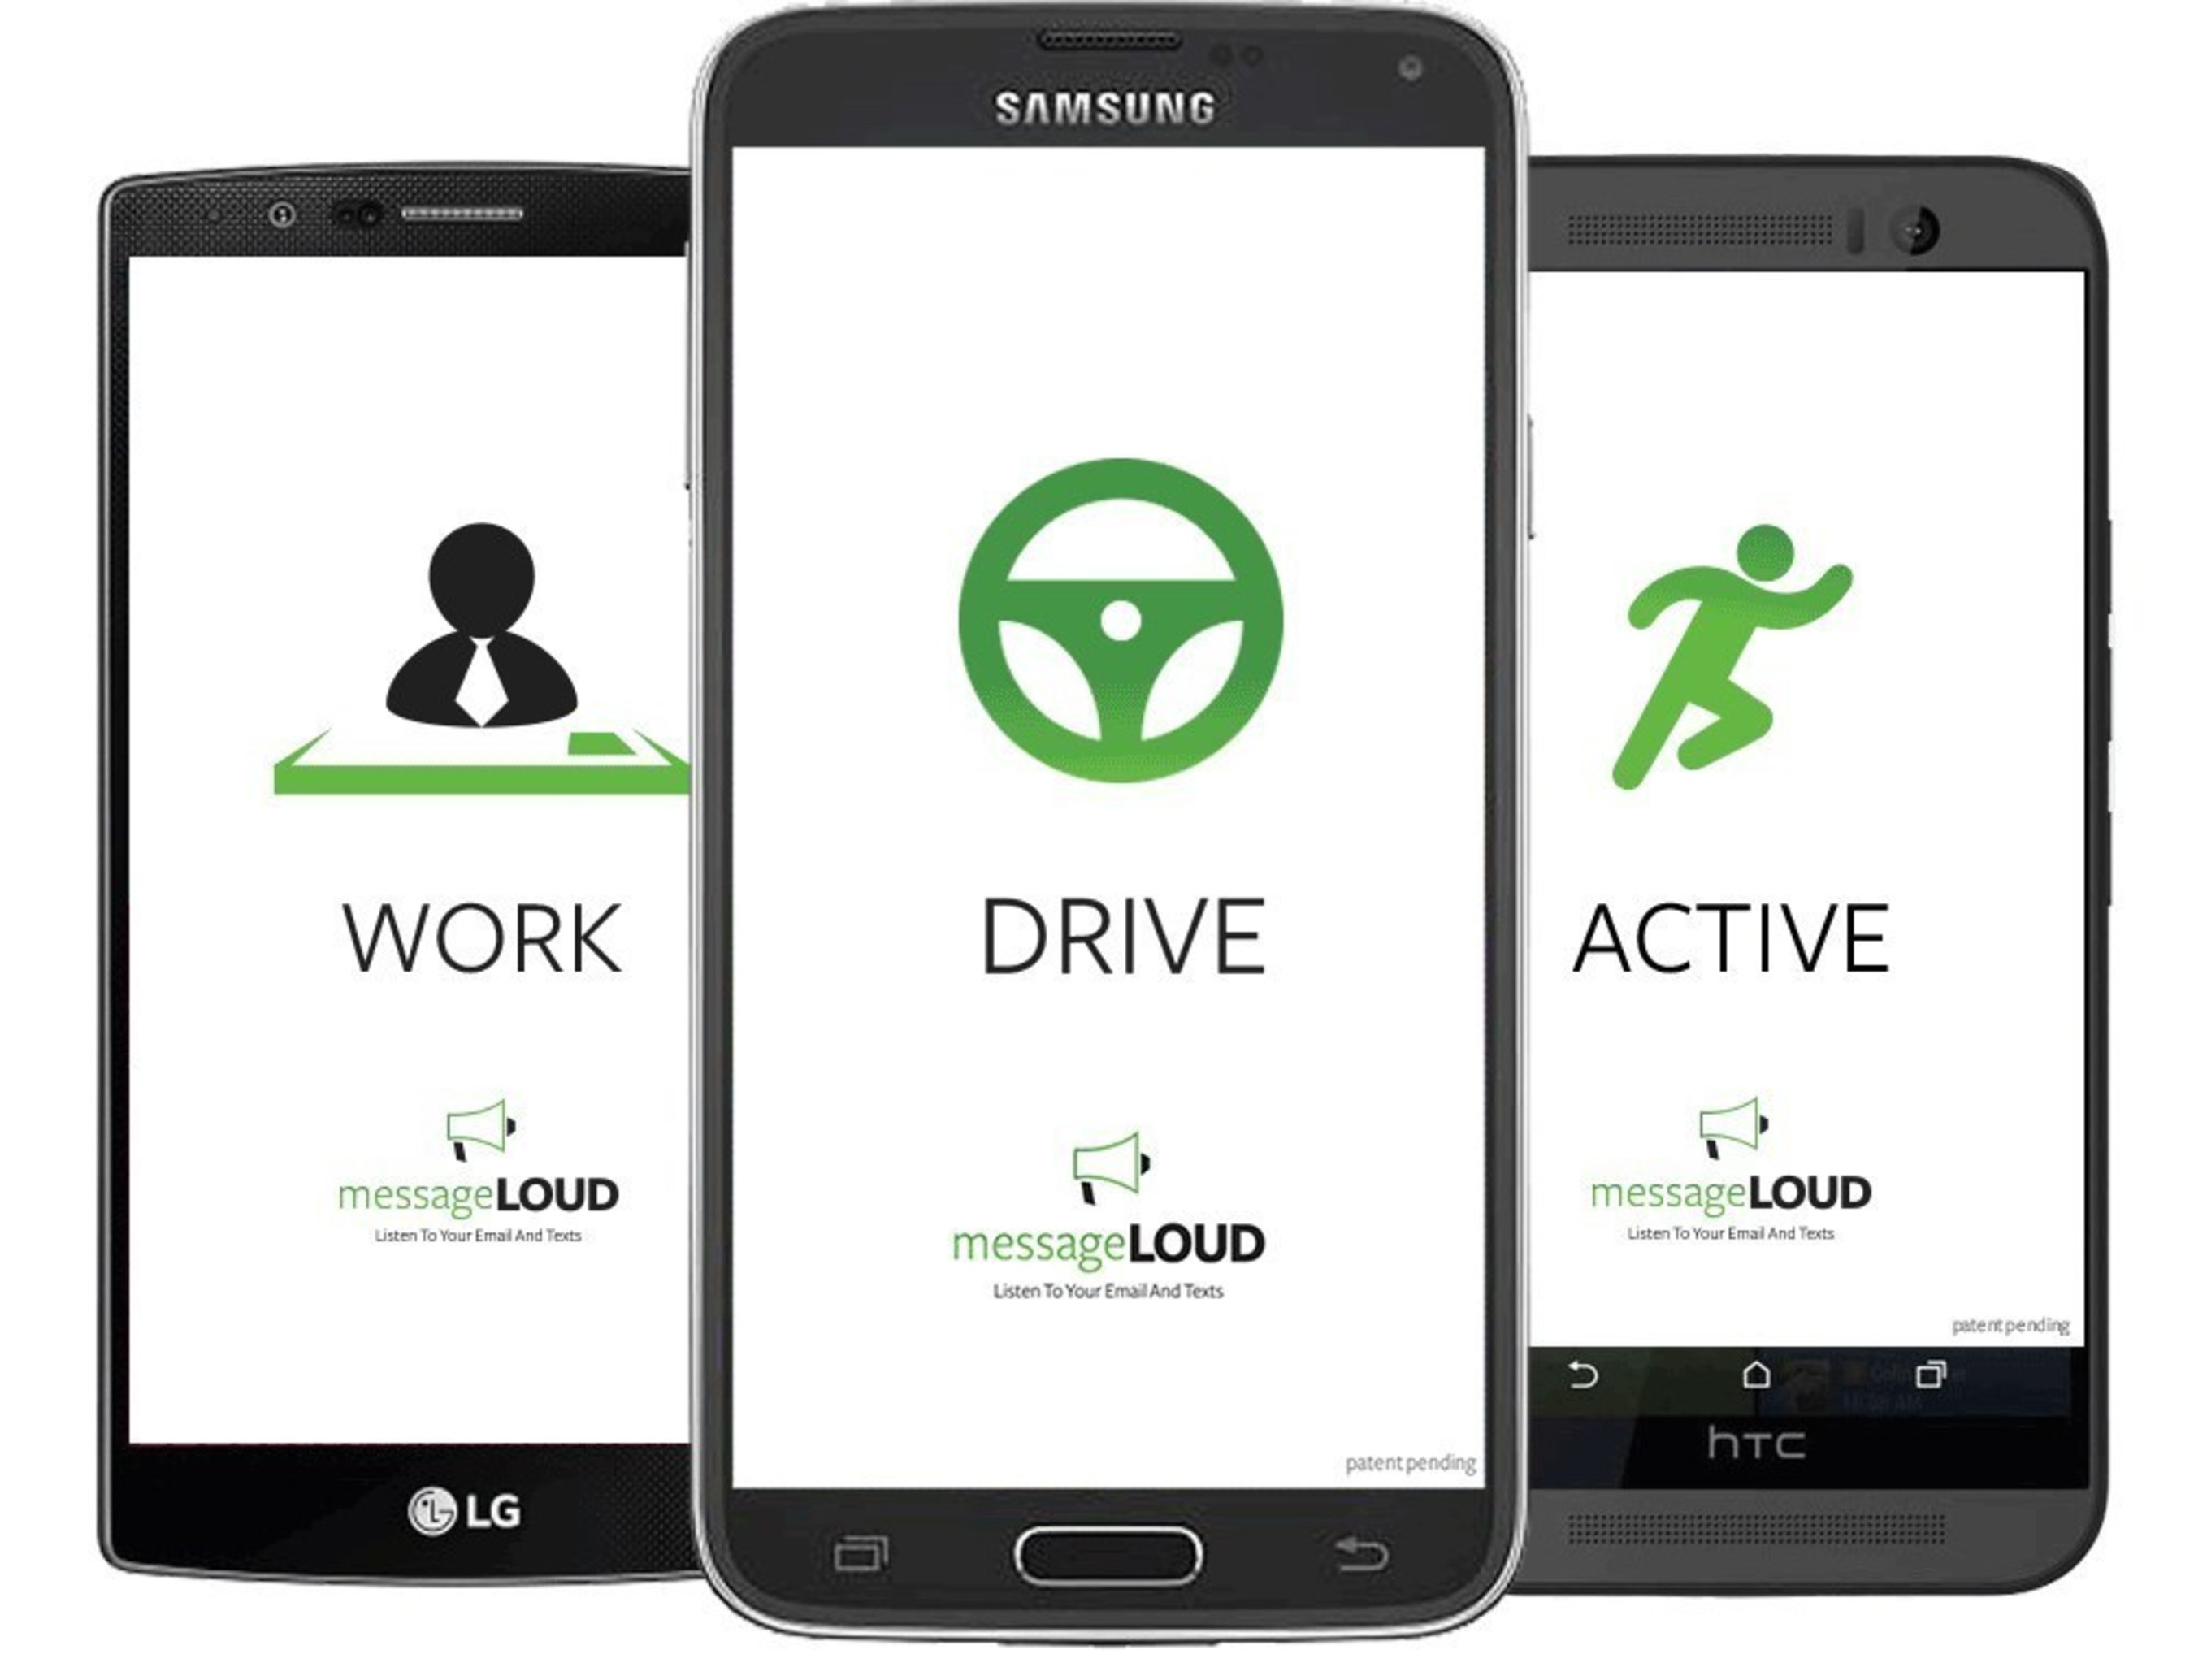 messageLOUD is a mobile messaging service that automatically READS your texts and email out LOUD without requiring you to look at your phone. messageLOUD enhances SAFE driving. Get the messageLOUD app today at the Google Play Store.